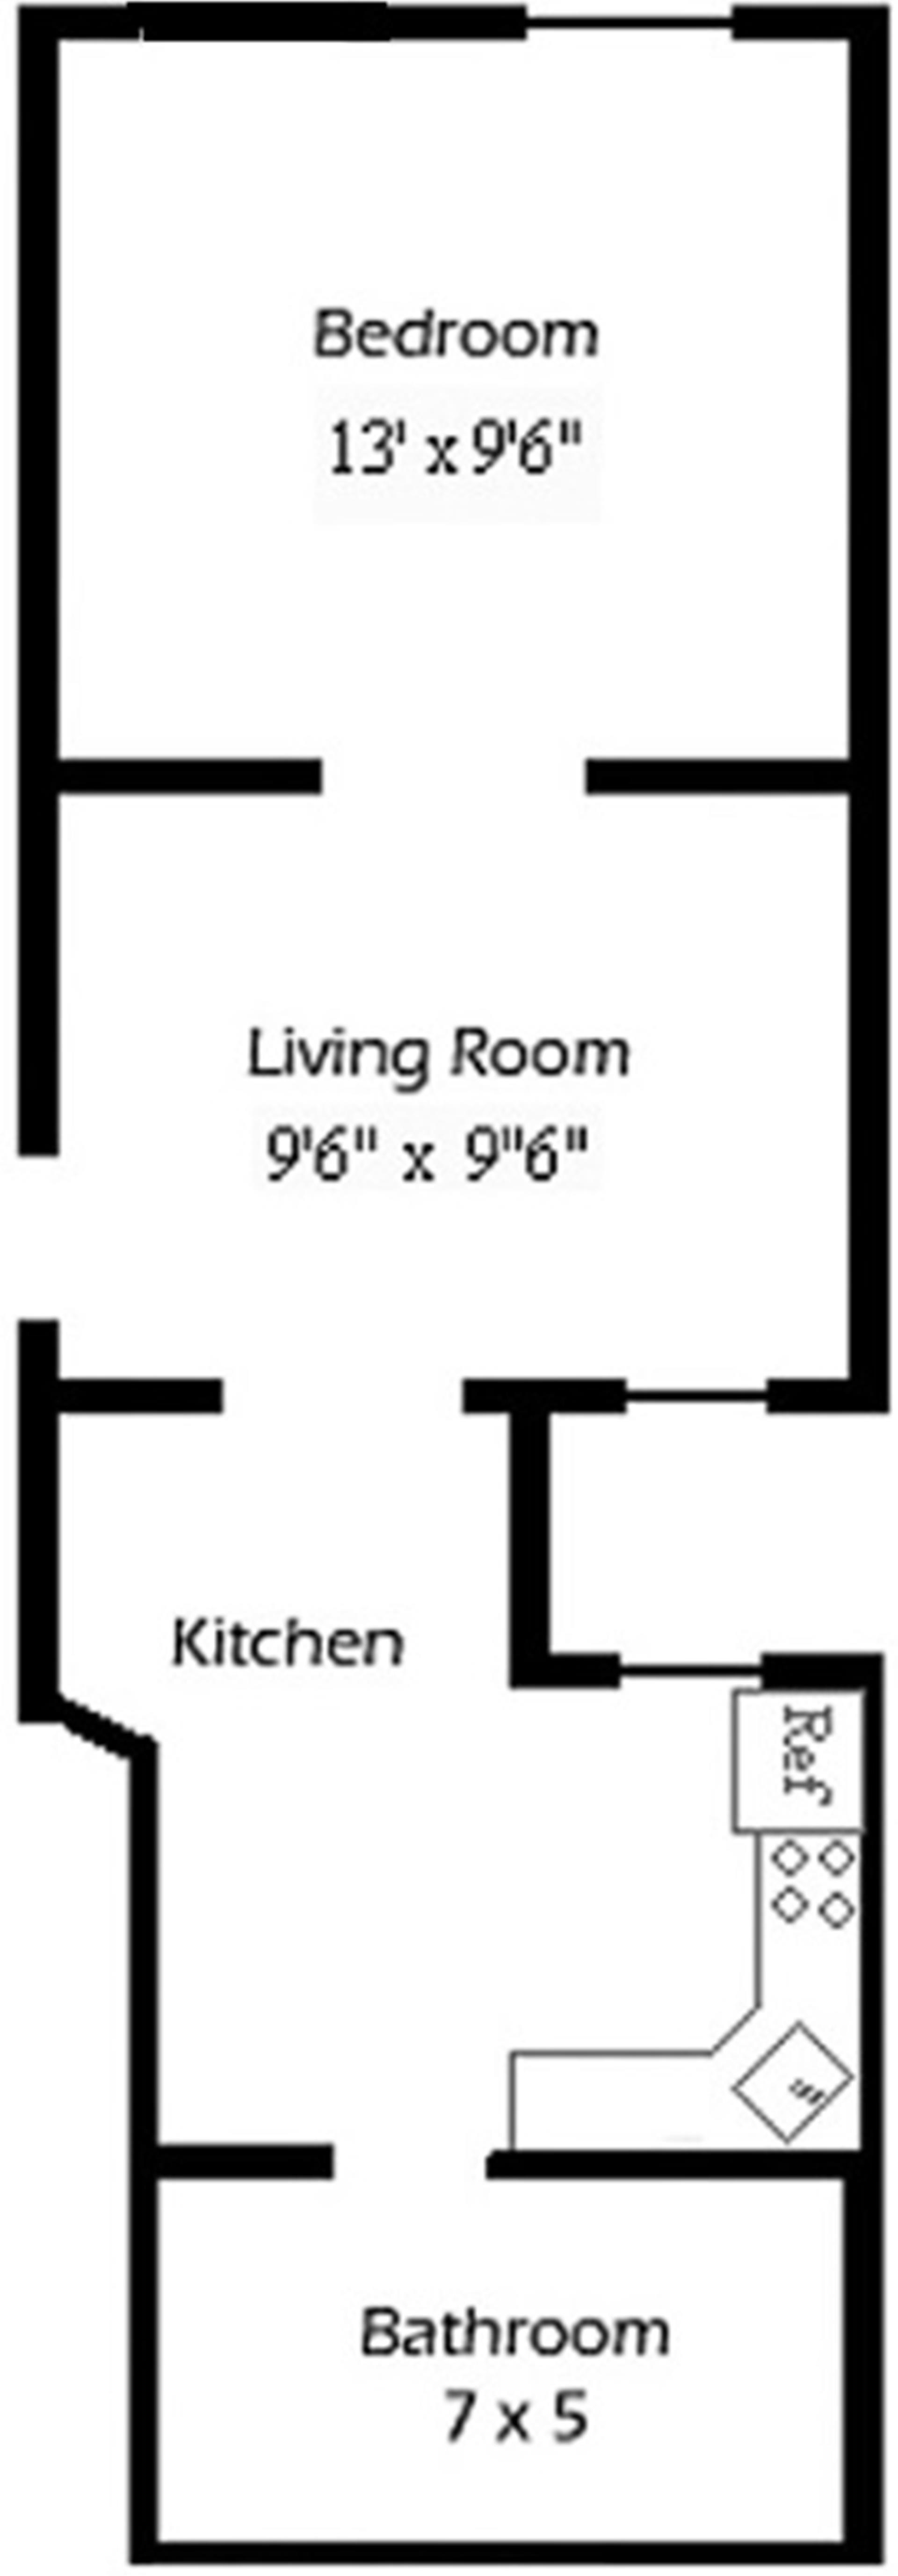 Floor plan of 244 East 90th St, 1A - Upper East Side, New York